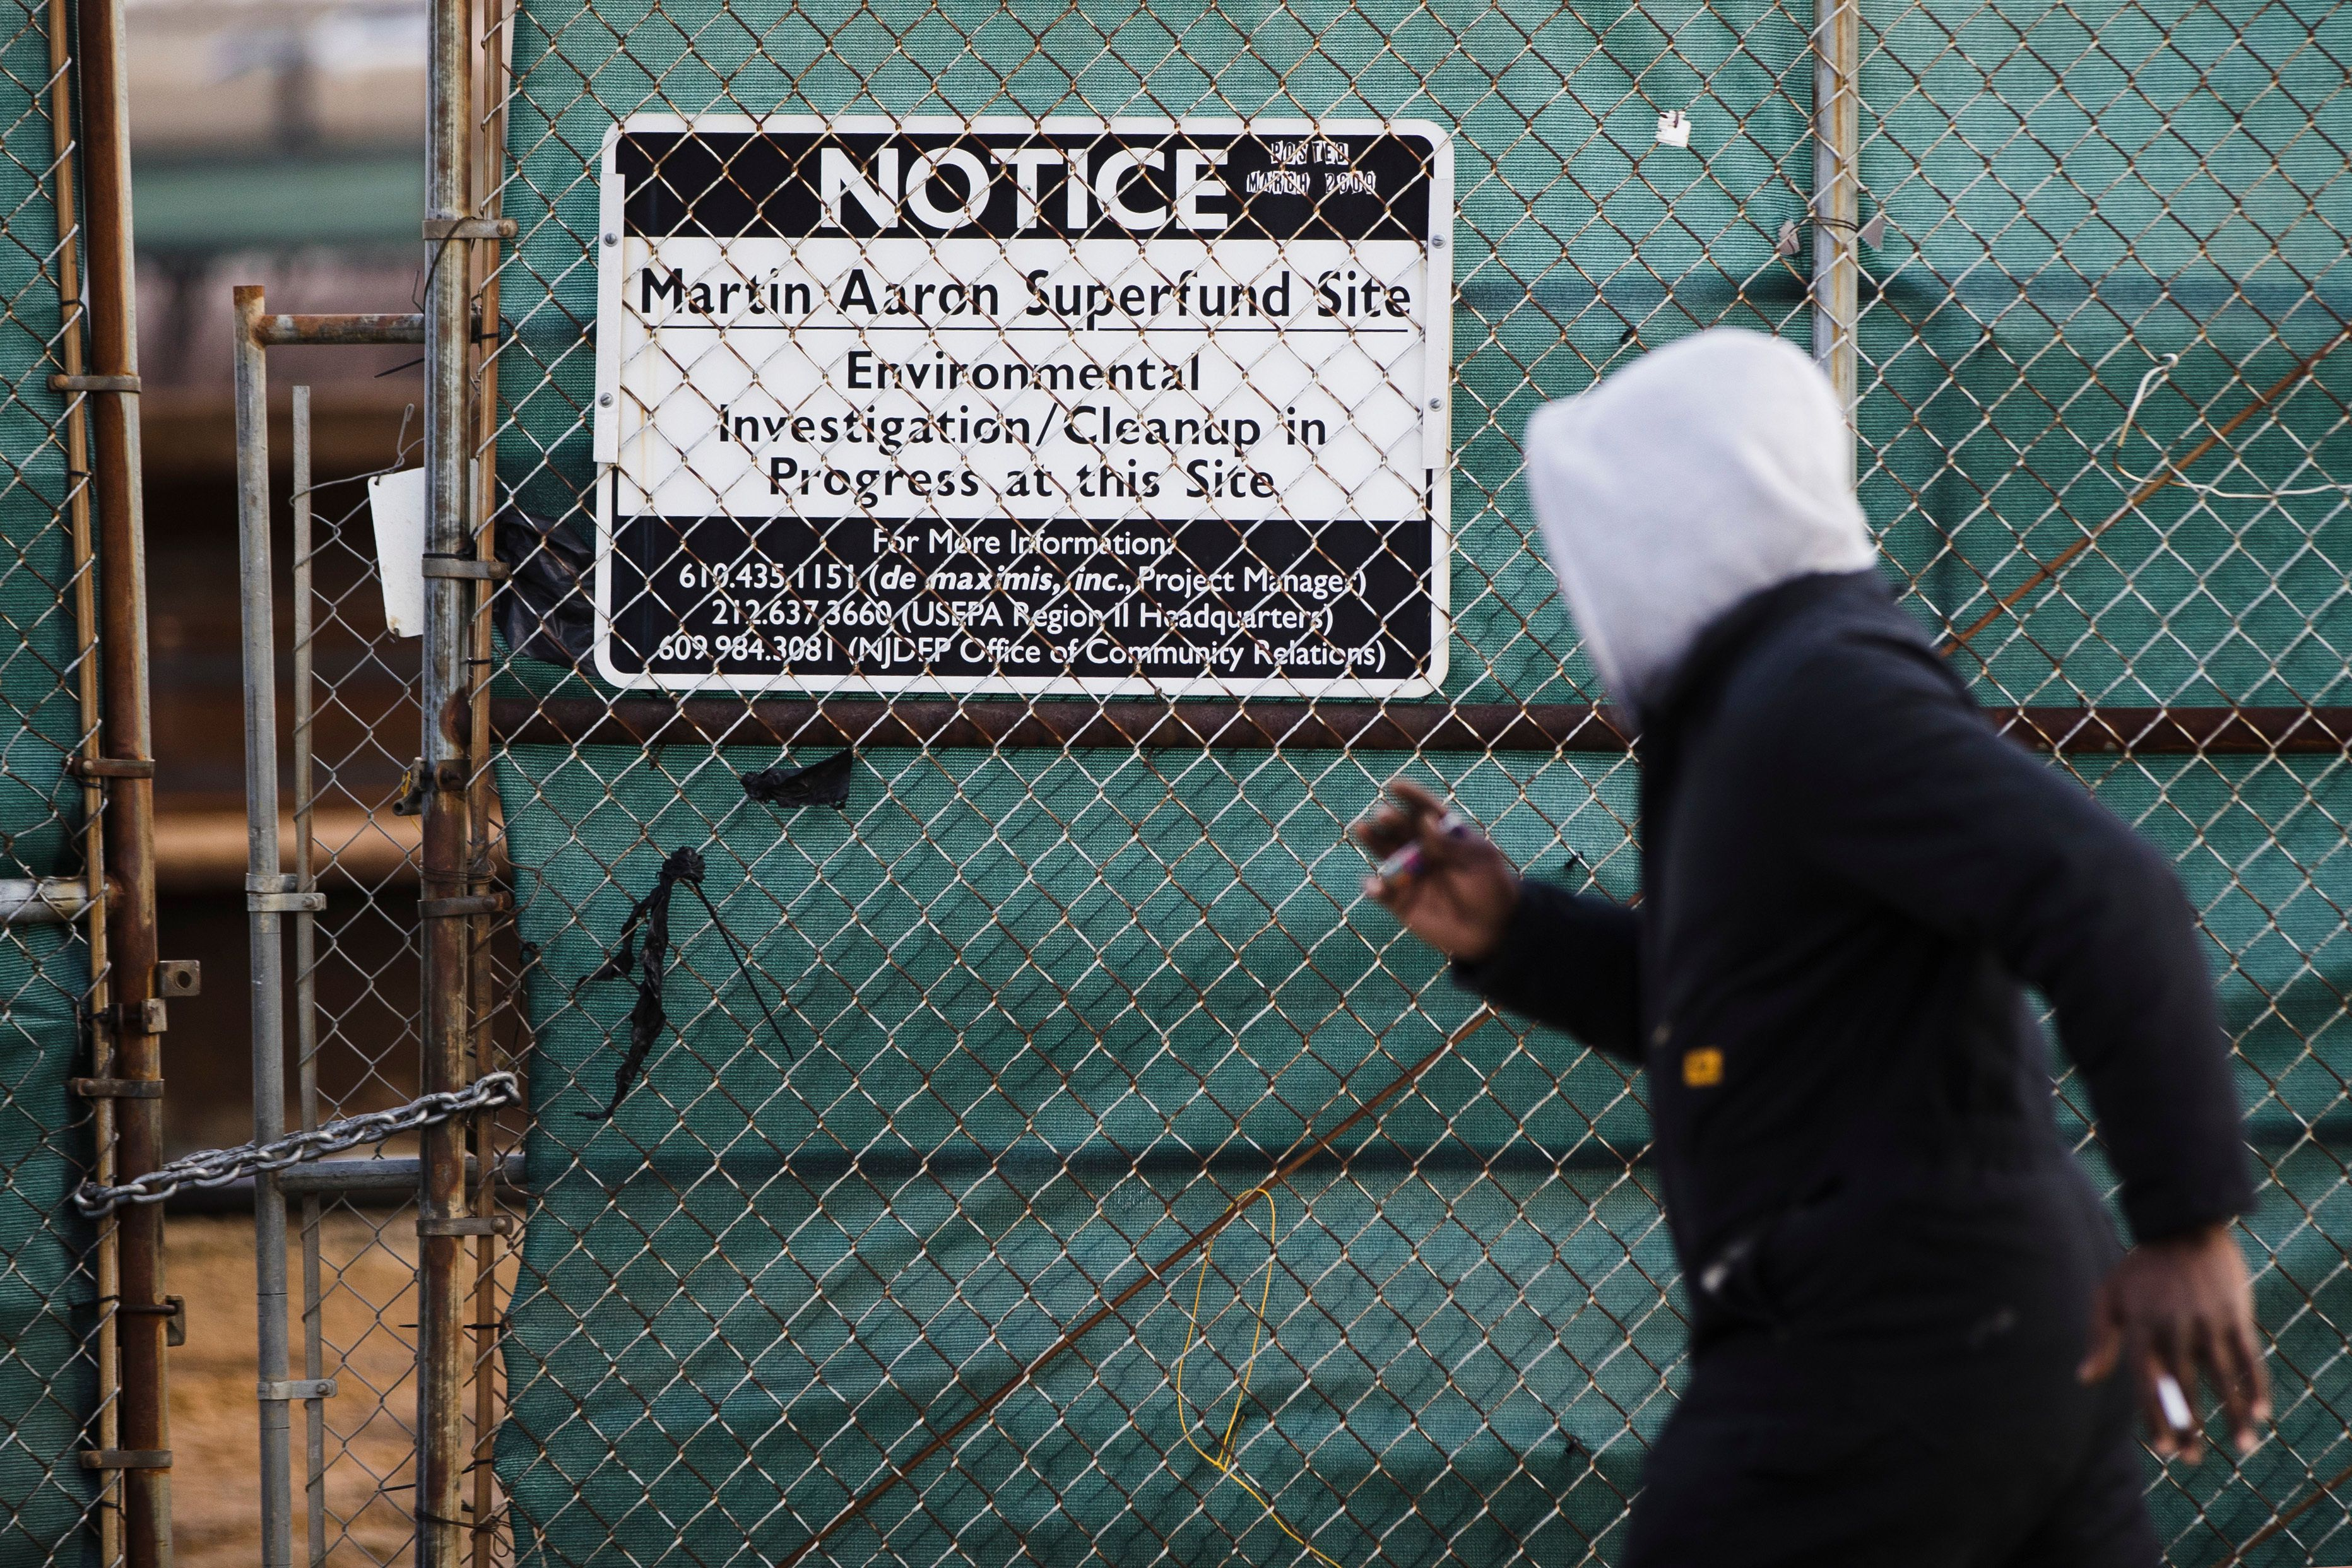 FILE - In this Dec. 11, 2017, file photo, a man walks past a notice for the Martin Aaron Inc. Superfund site in Camden, N.J. A lawyer tapped to lead a task force at the Environmental Protection Agency overseeing cleanups at the nation's most polluted places until recently worked for a top chemical and plastics manufacturer with a troubled legacy of creating some of those toxic sites. (AP Photo/Matt Rourke, File)